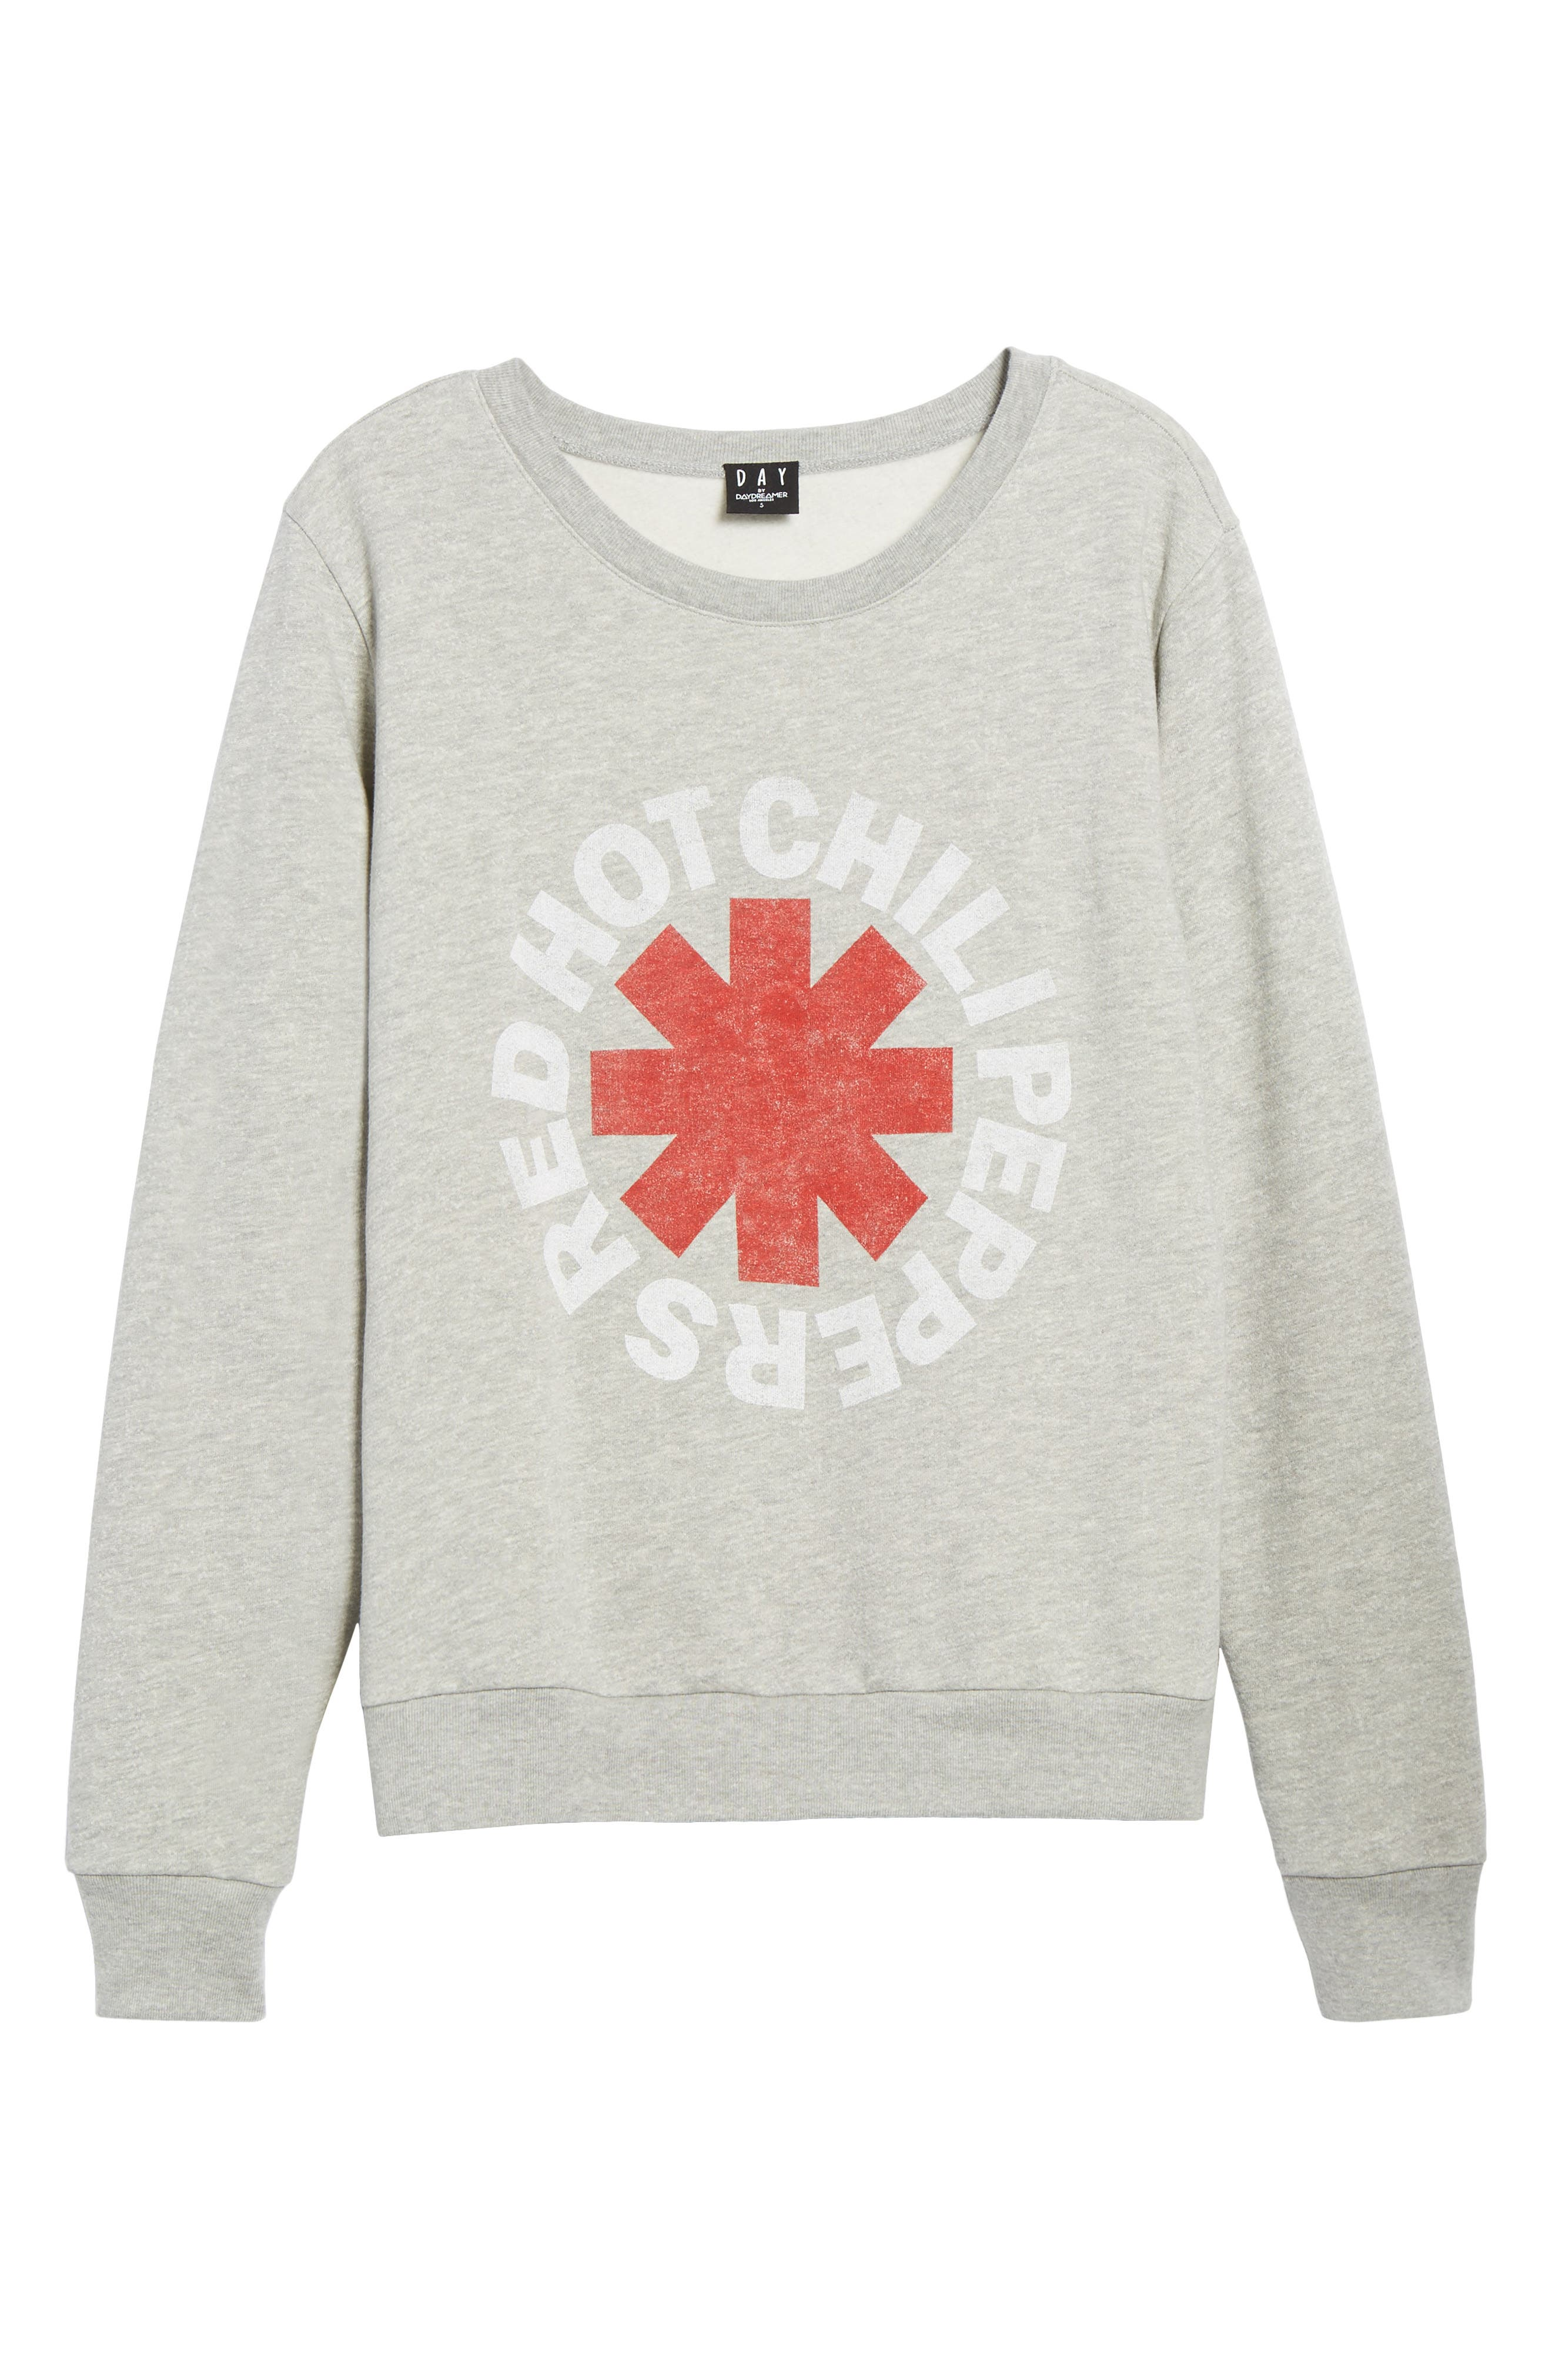 Red Hot Chili Peppers Sweatshirt,                             Alternate thumbnail 6, color,                             Heather Grey